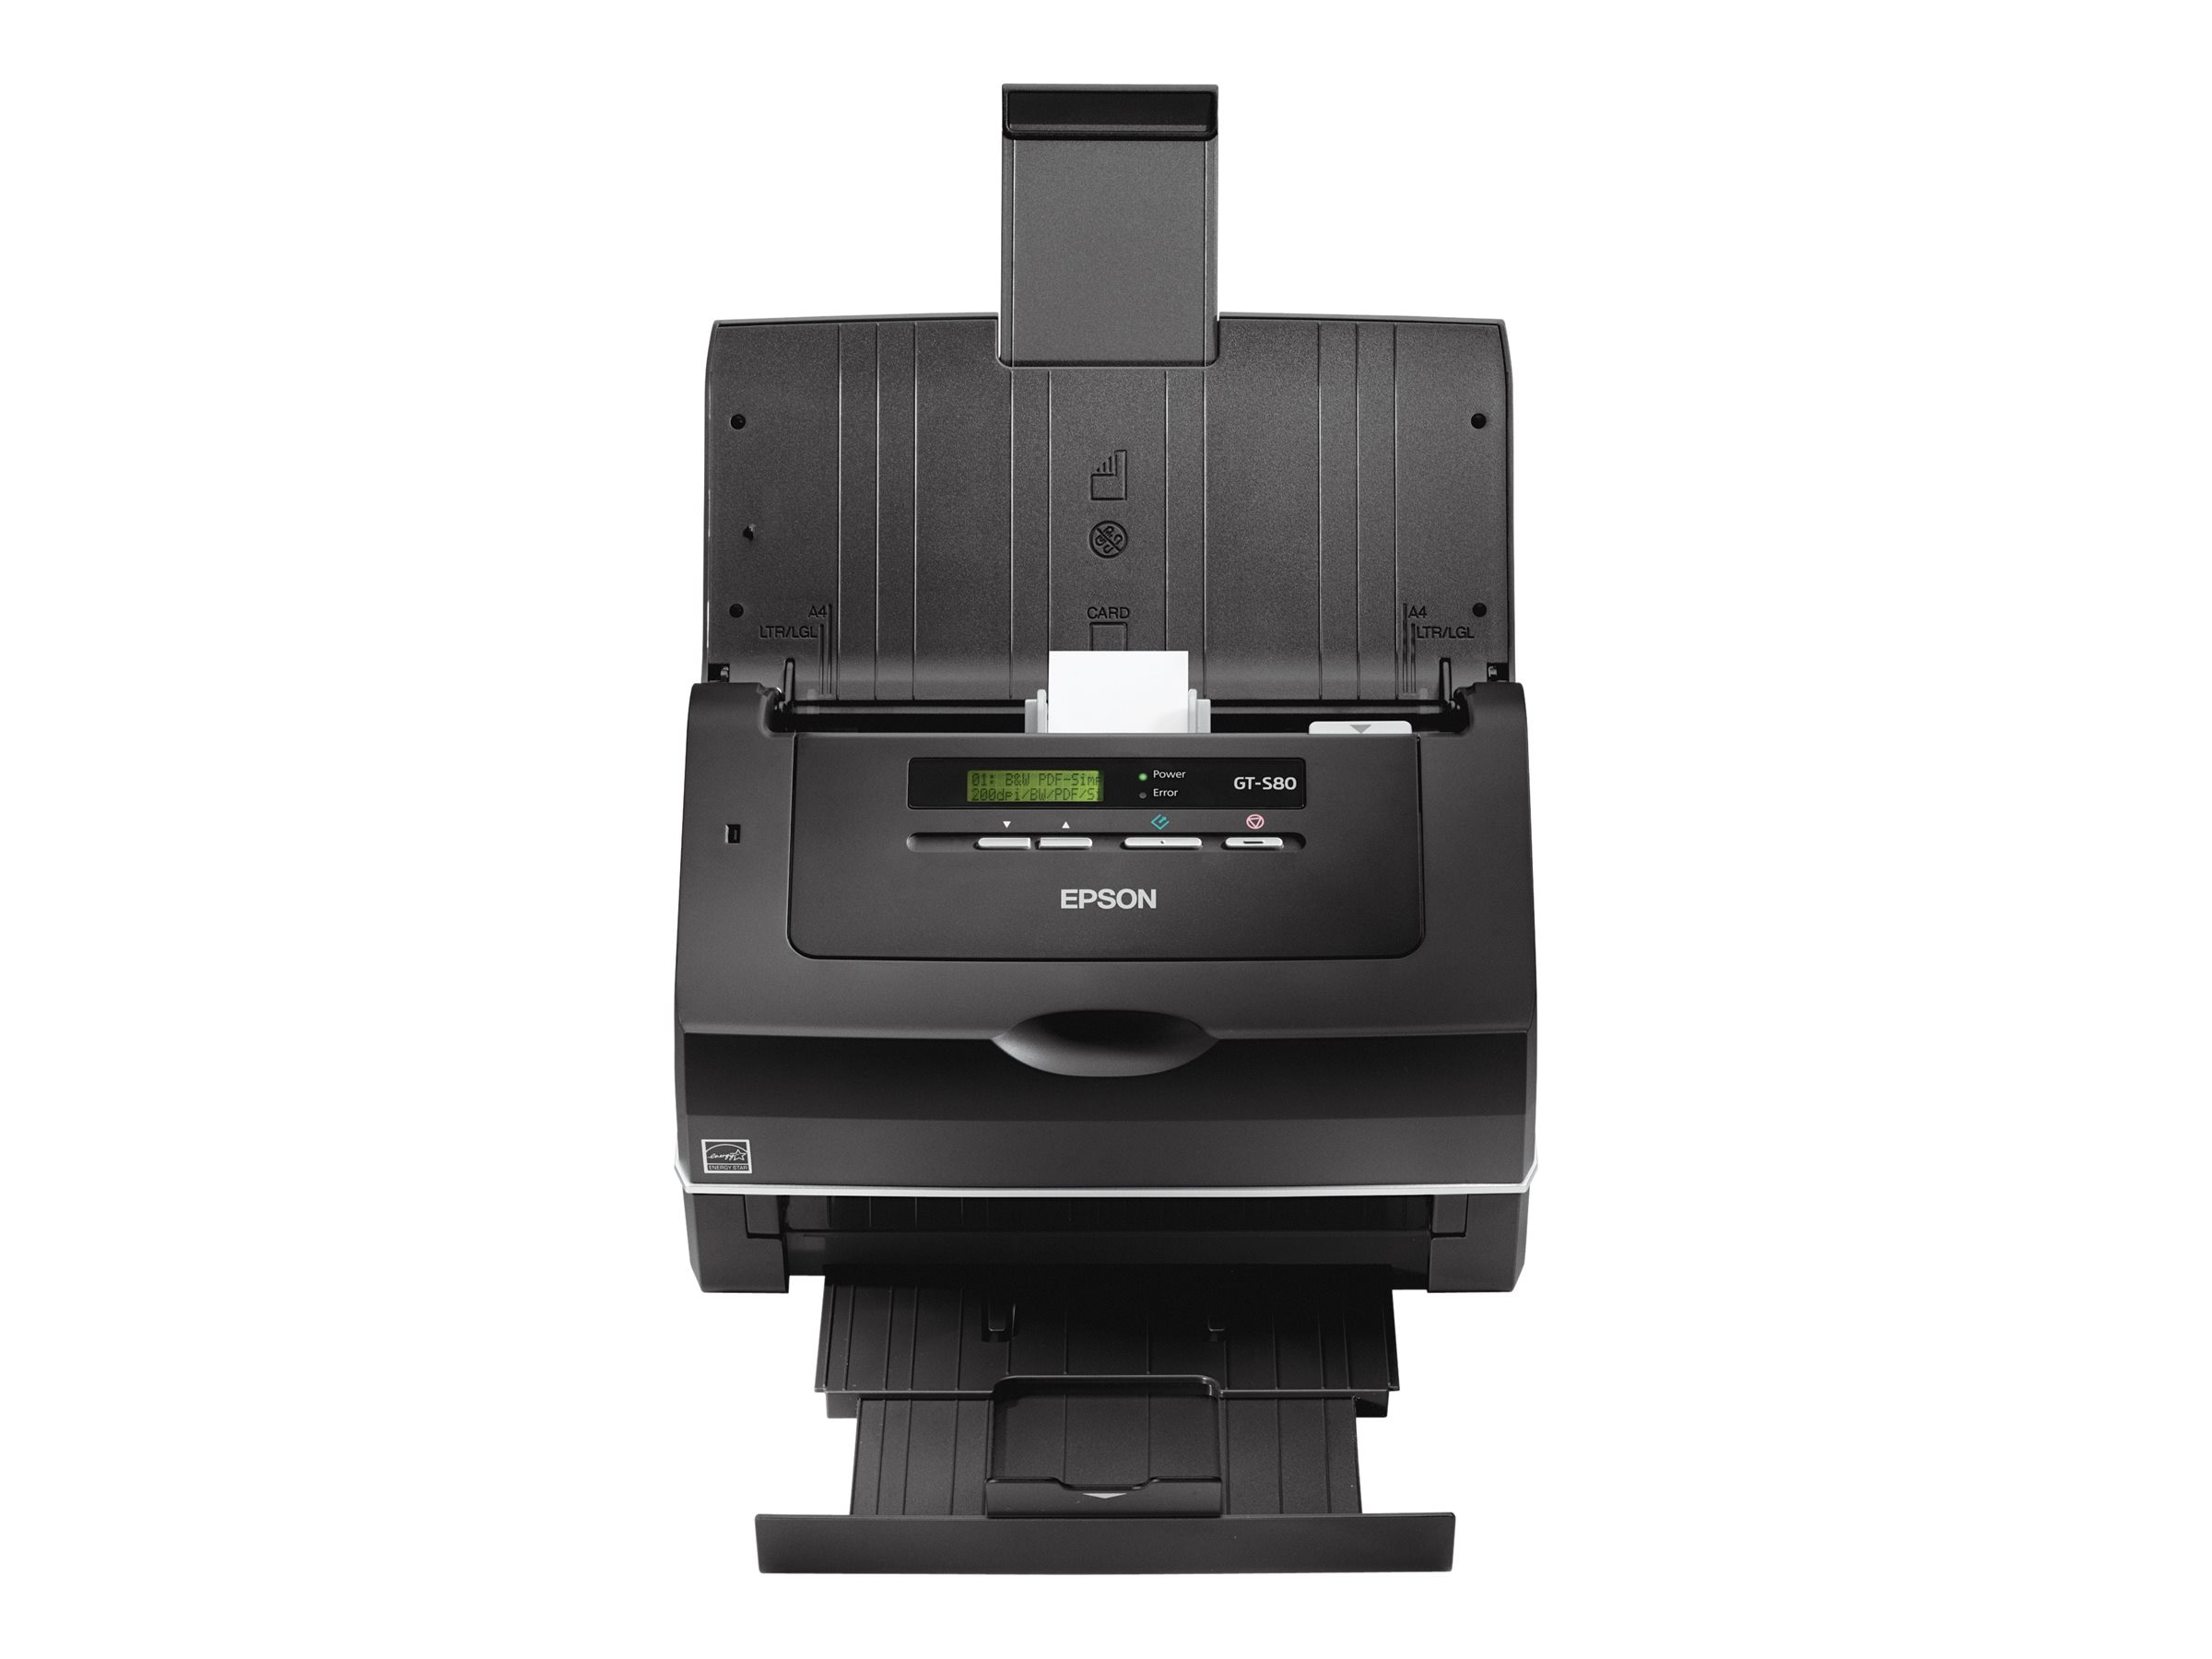 Epson WorkForce Pro GT-S80 Scanner - $799.99 less instant rebate of $62.00, B11B194081, 9324108, Scanners